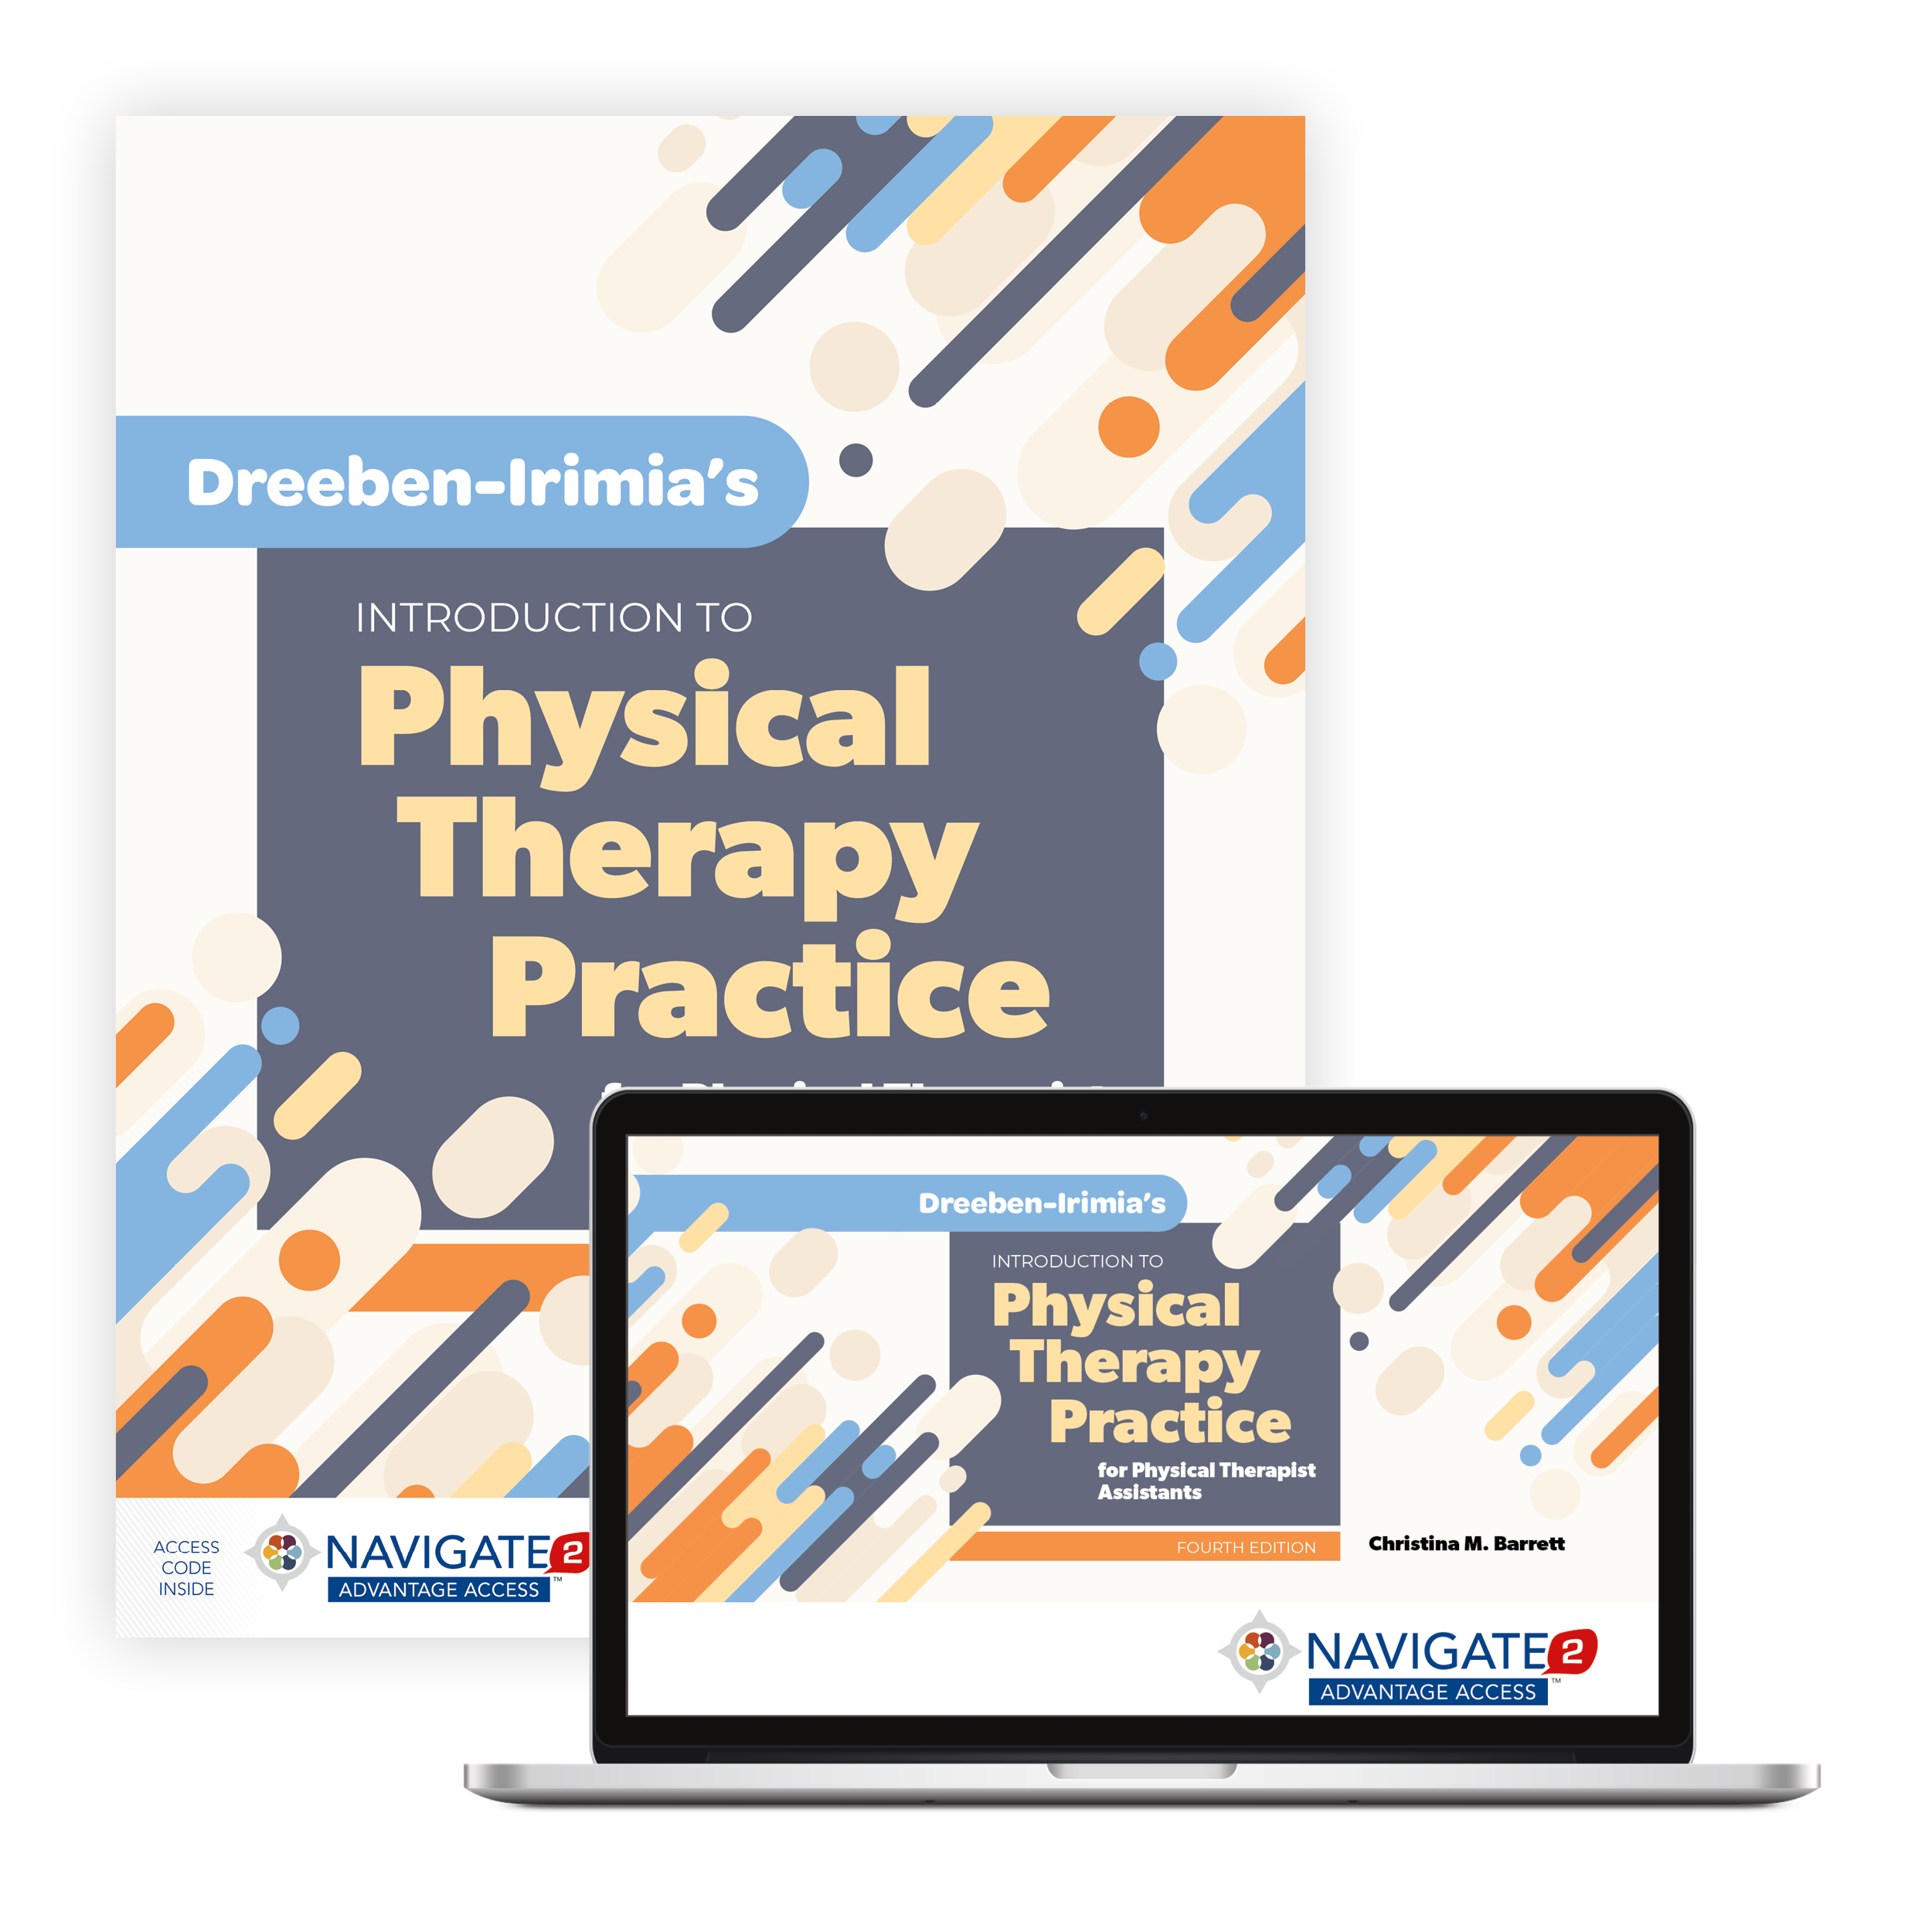 Dreeben-Irimia's Introduction to Physical Therapist Practice